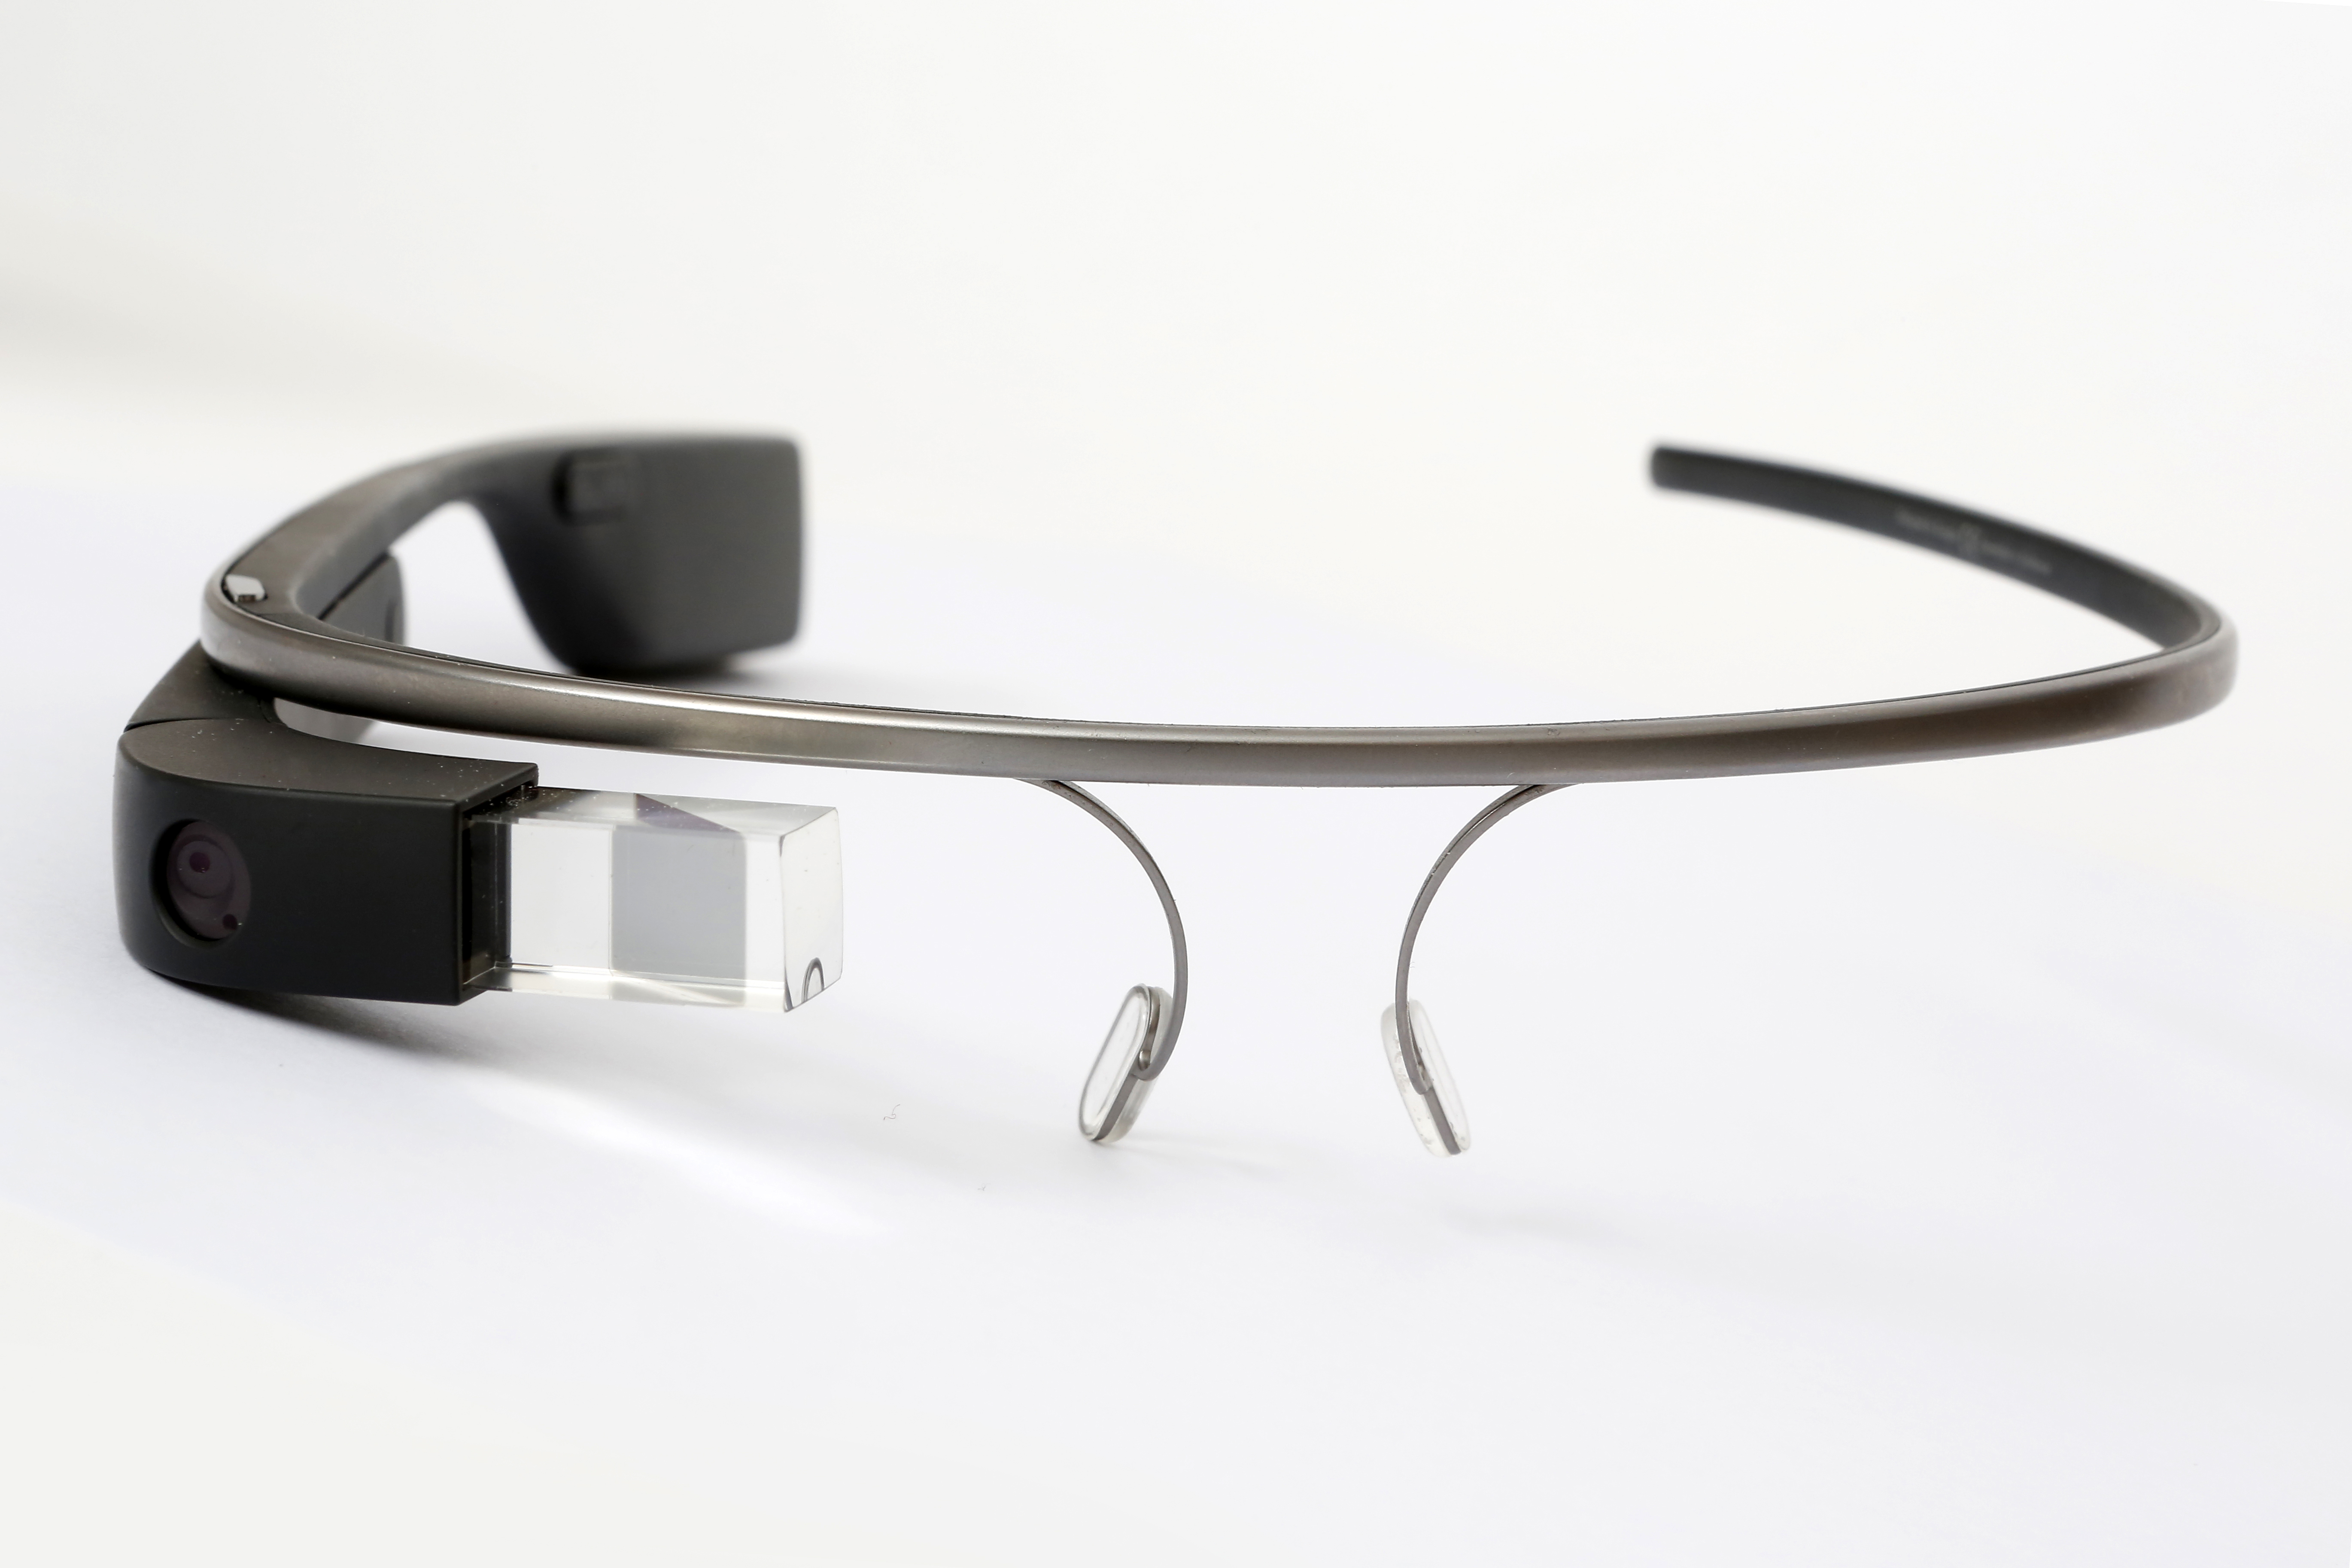 5 New Marketing Trends Brought To Us Via Wearables